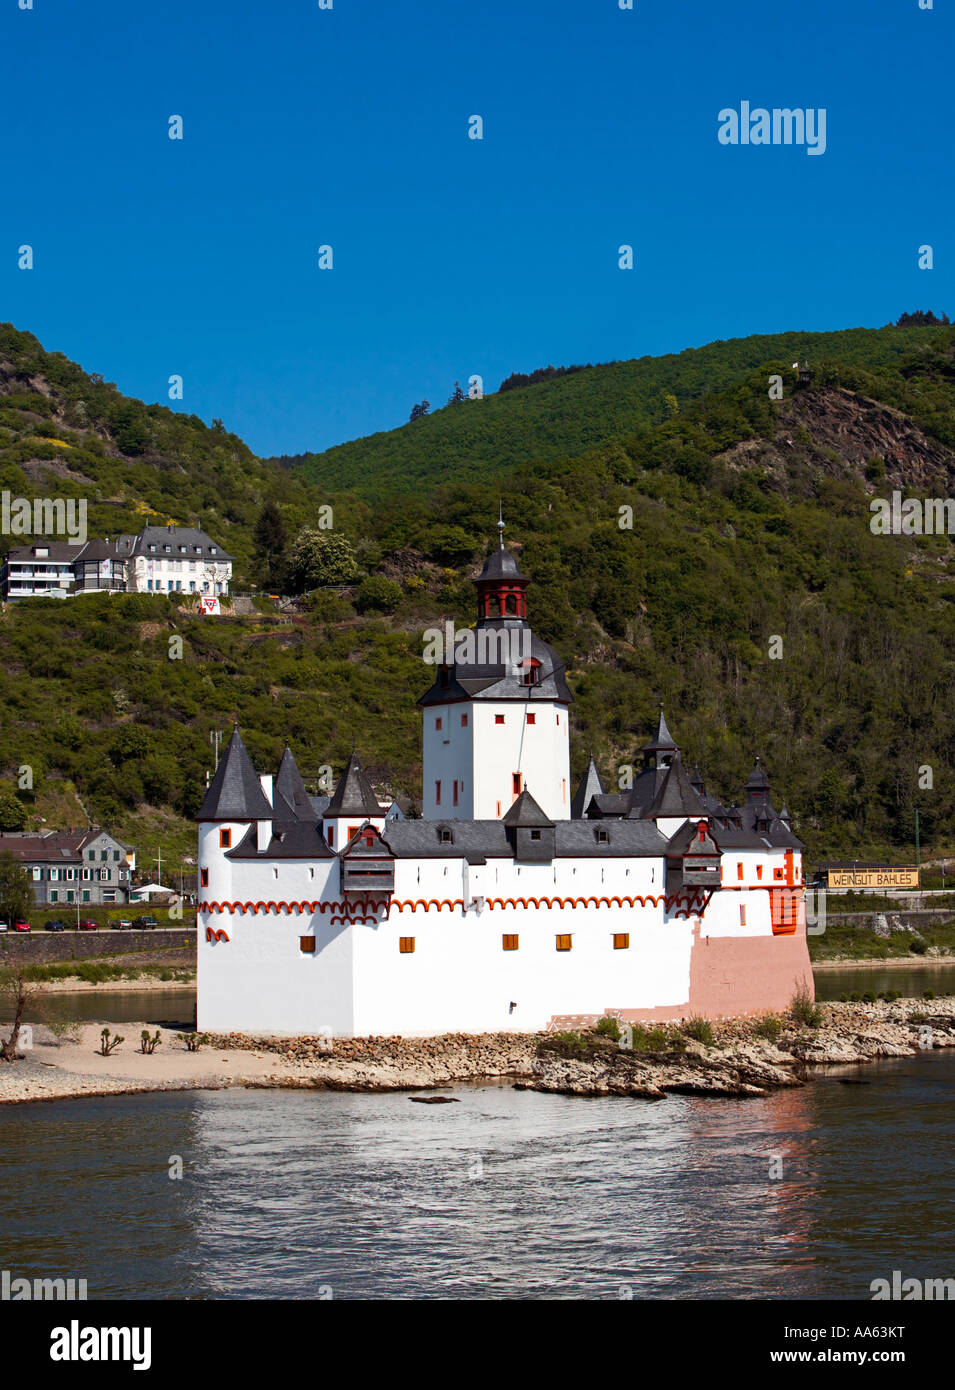 Castle Pfalz on the River Rhine, Germany, Europe Stock Photo